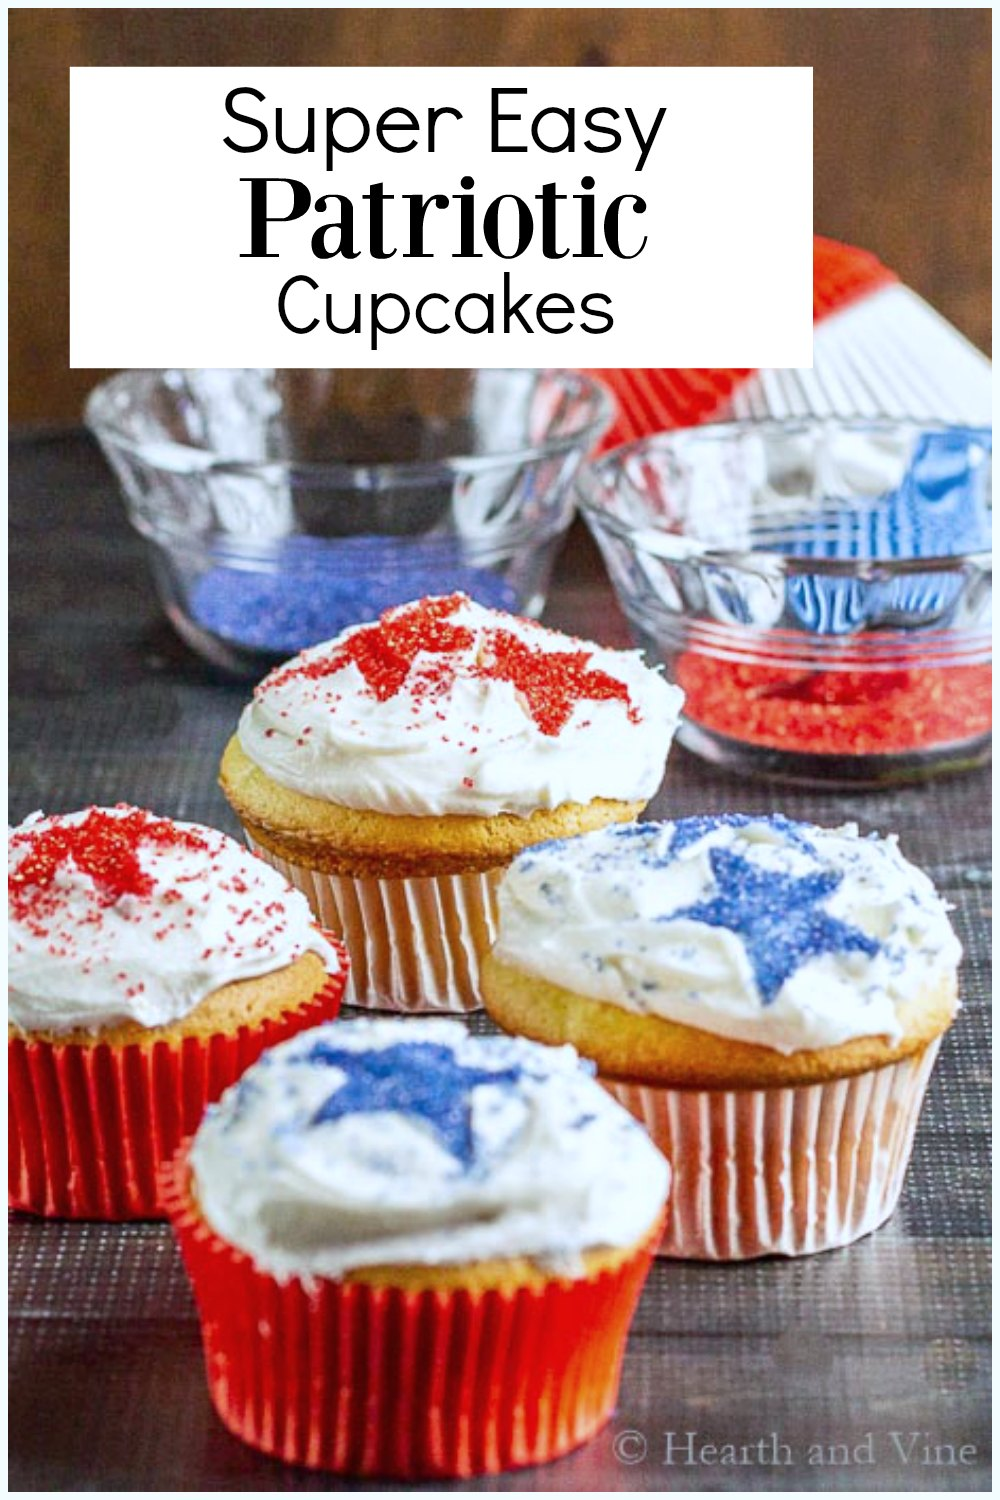 Cupcakes with red and blue stars